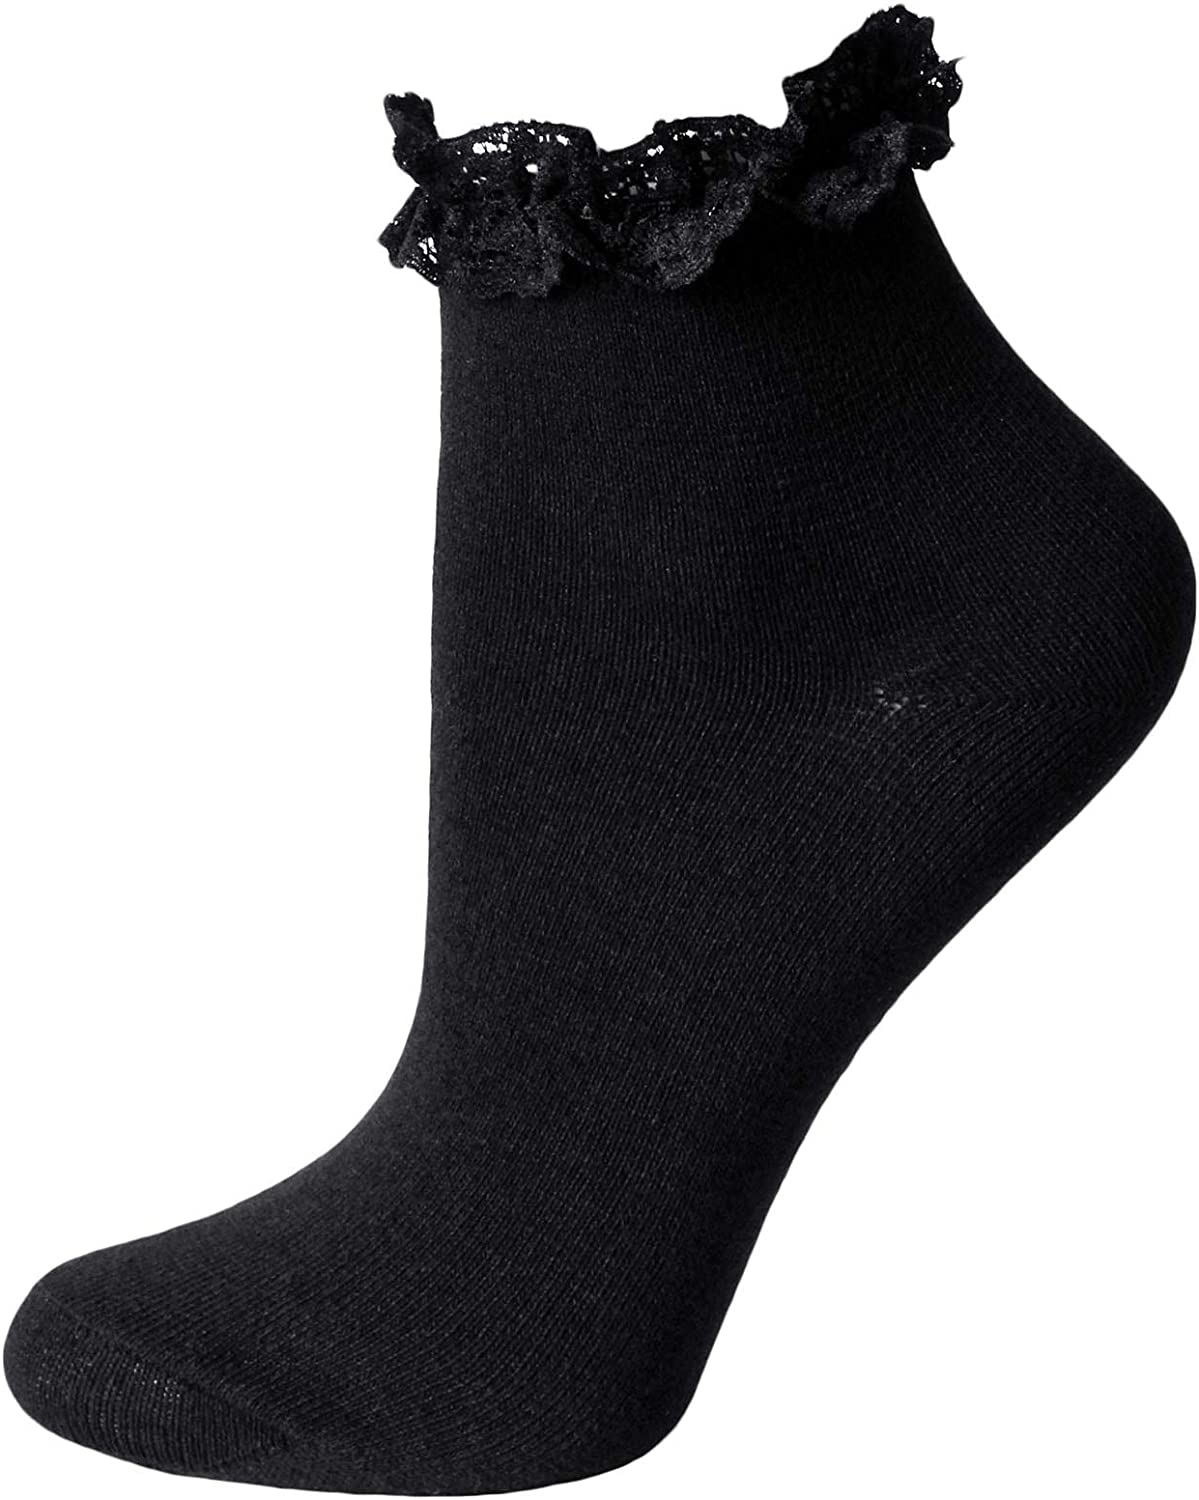 Girls Pretty Frilly Lace Top Soft Cotton Rich Back to School Ankle Socks 6 pair Black//White Black, 9-12